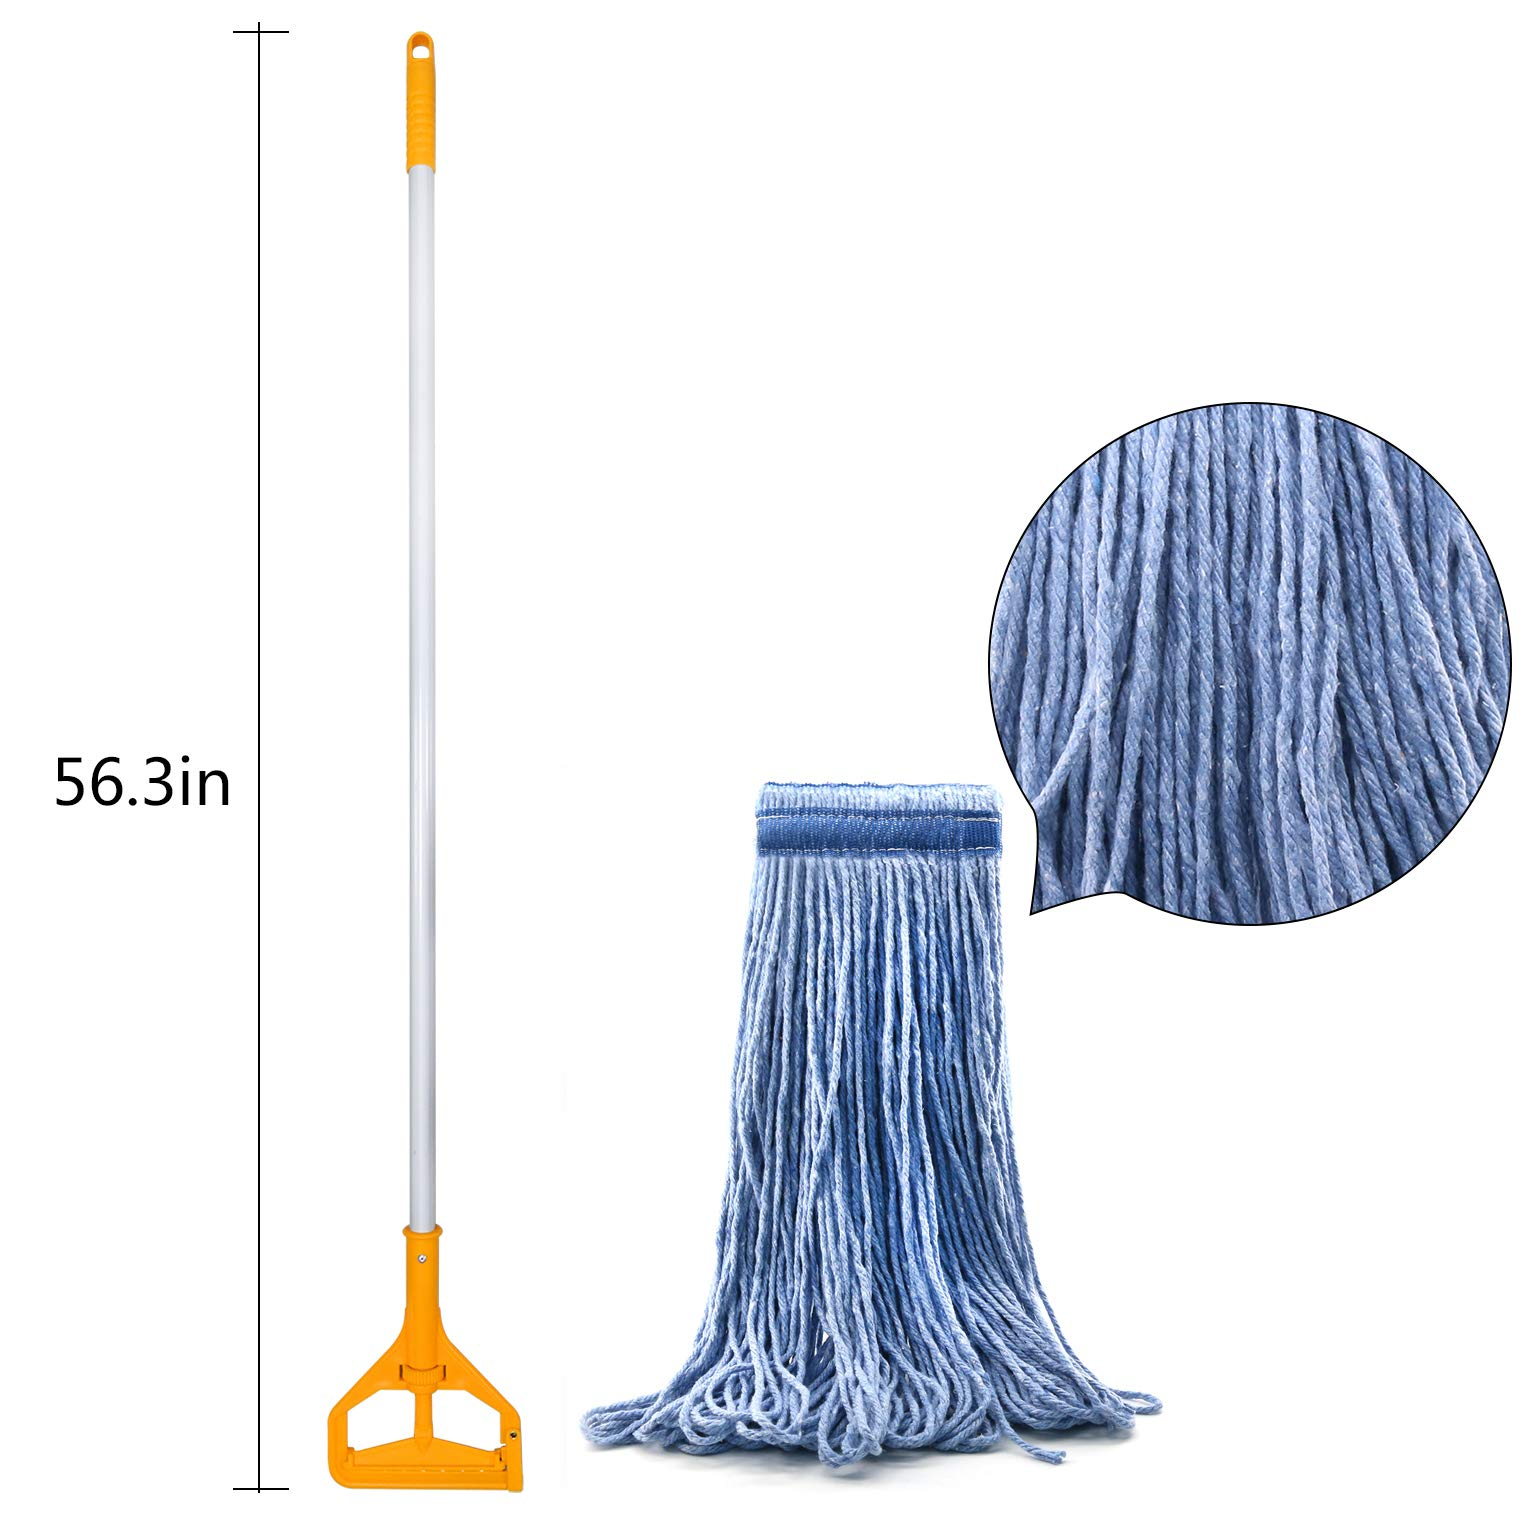 3 Pack Best Value 56-inch Quick Change Mop Handles Rust Free Aluminum Handle with 3 Loop-End Mop Heads for Home, Commercial and Industrial Use (56 inch) by Tidy Monster (Image #3)